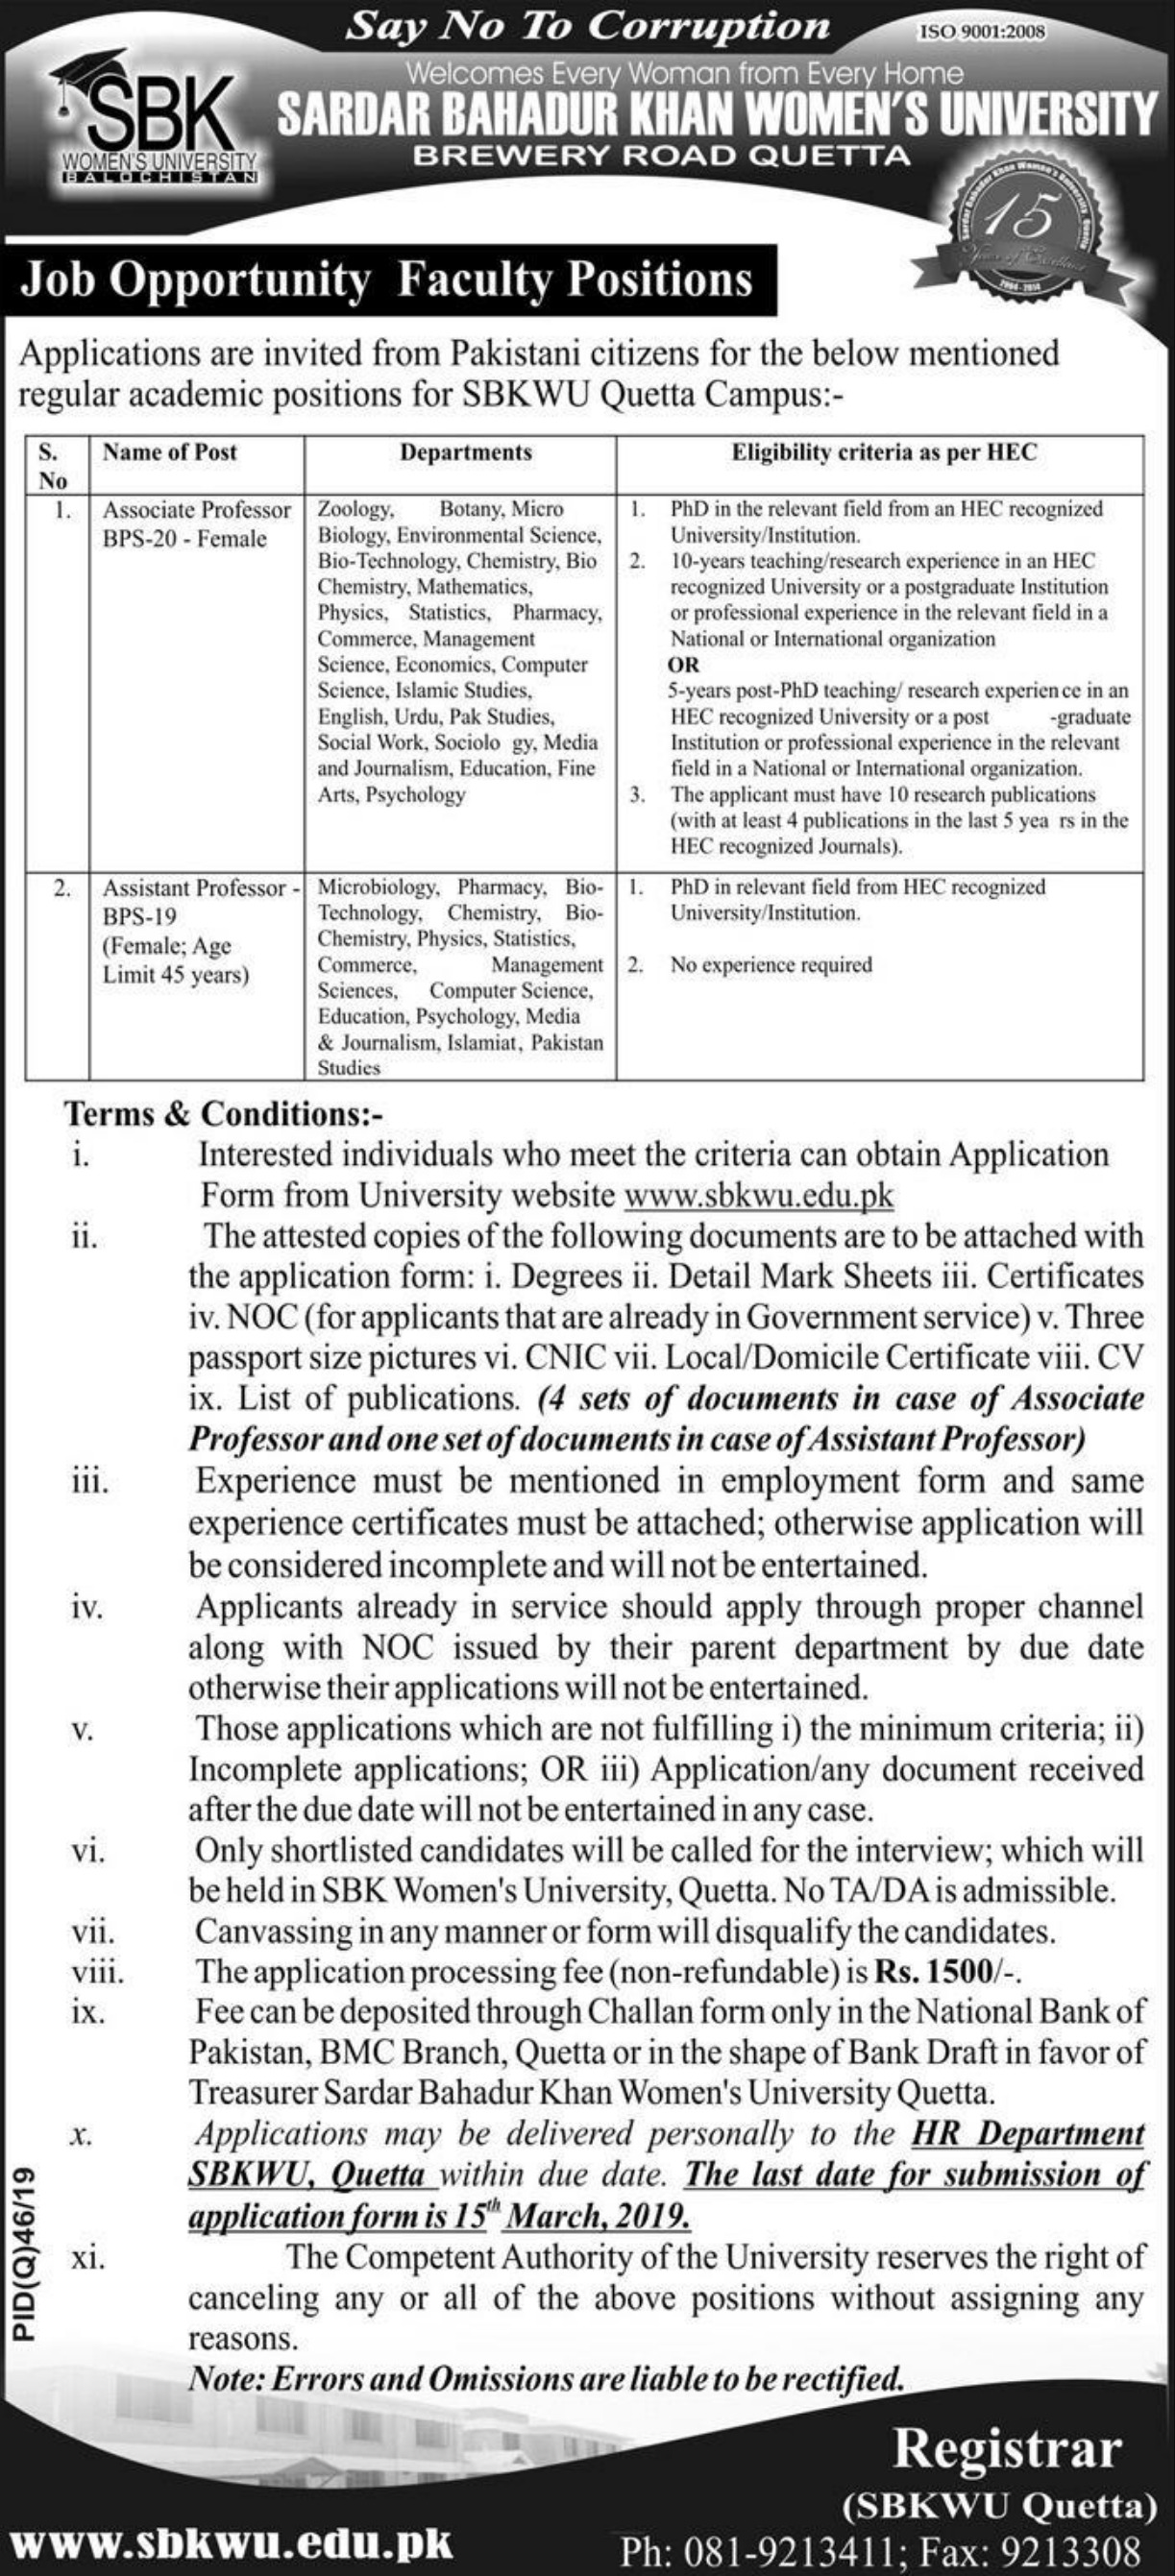 Sardar Bahadur Khan Women's University Quetta Jobs 2019 Balochistan Latest